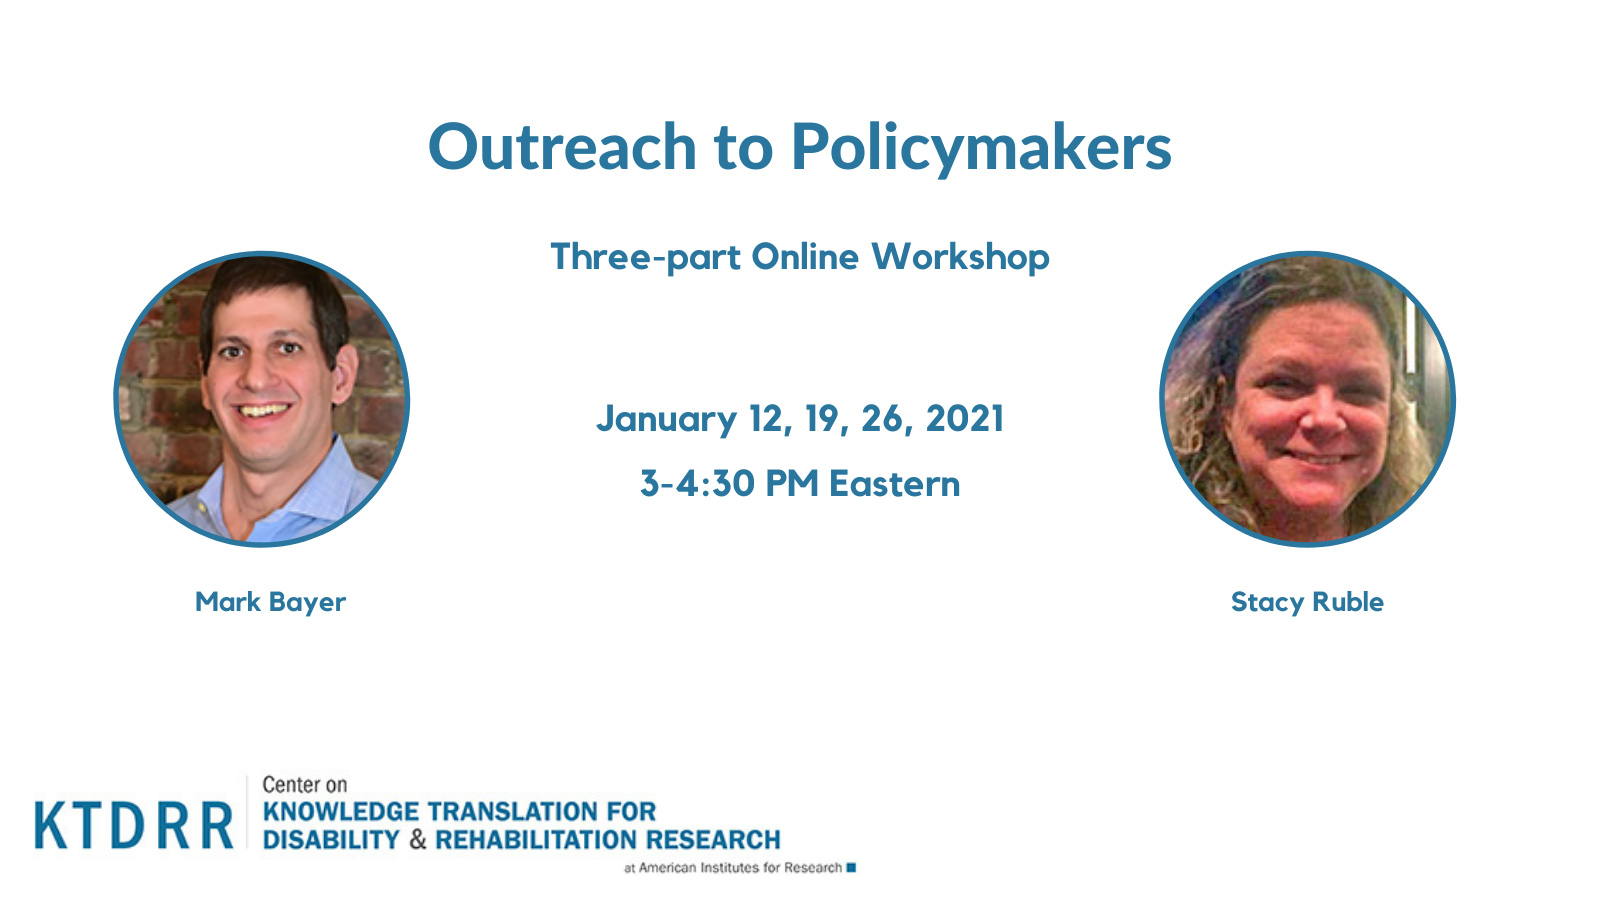 Outreach to Policymakers Three-part Online Workshop, January 12, 19, 26, 2021, 3-4:30 PM Eastern with Mark Boyer and Stacy Ruble